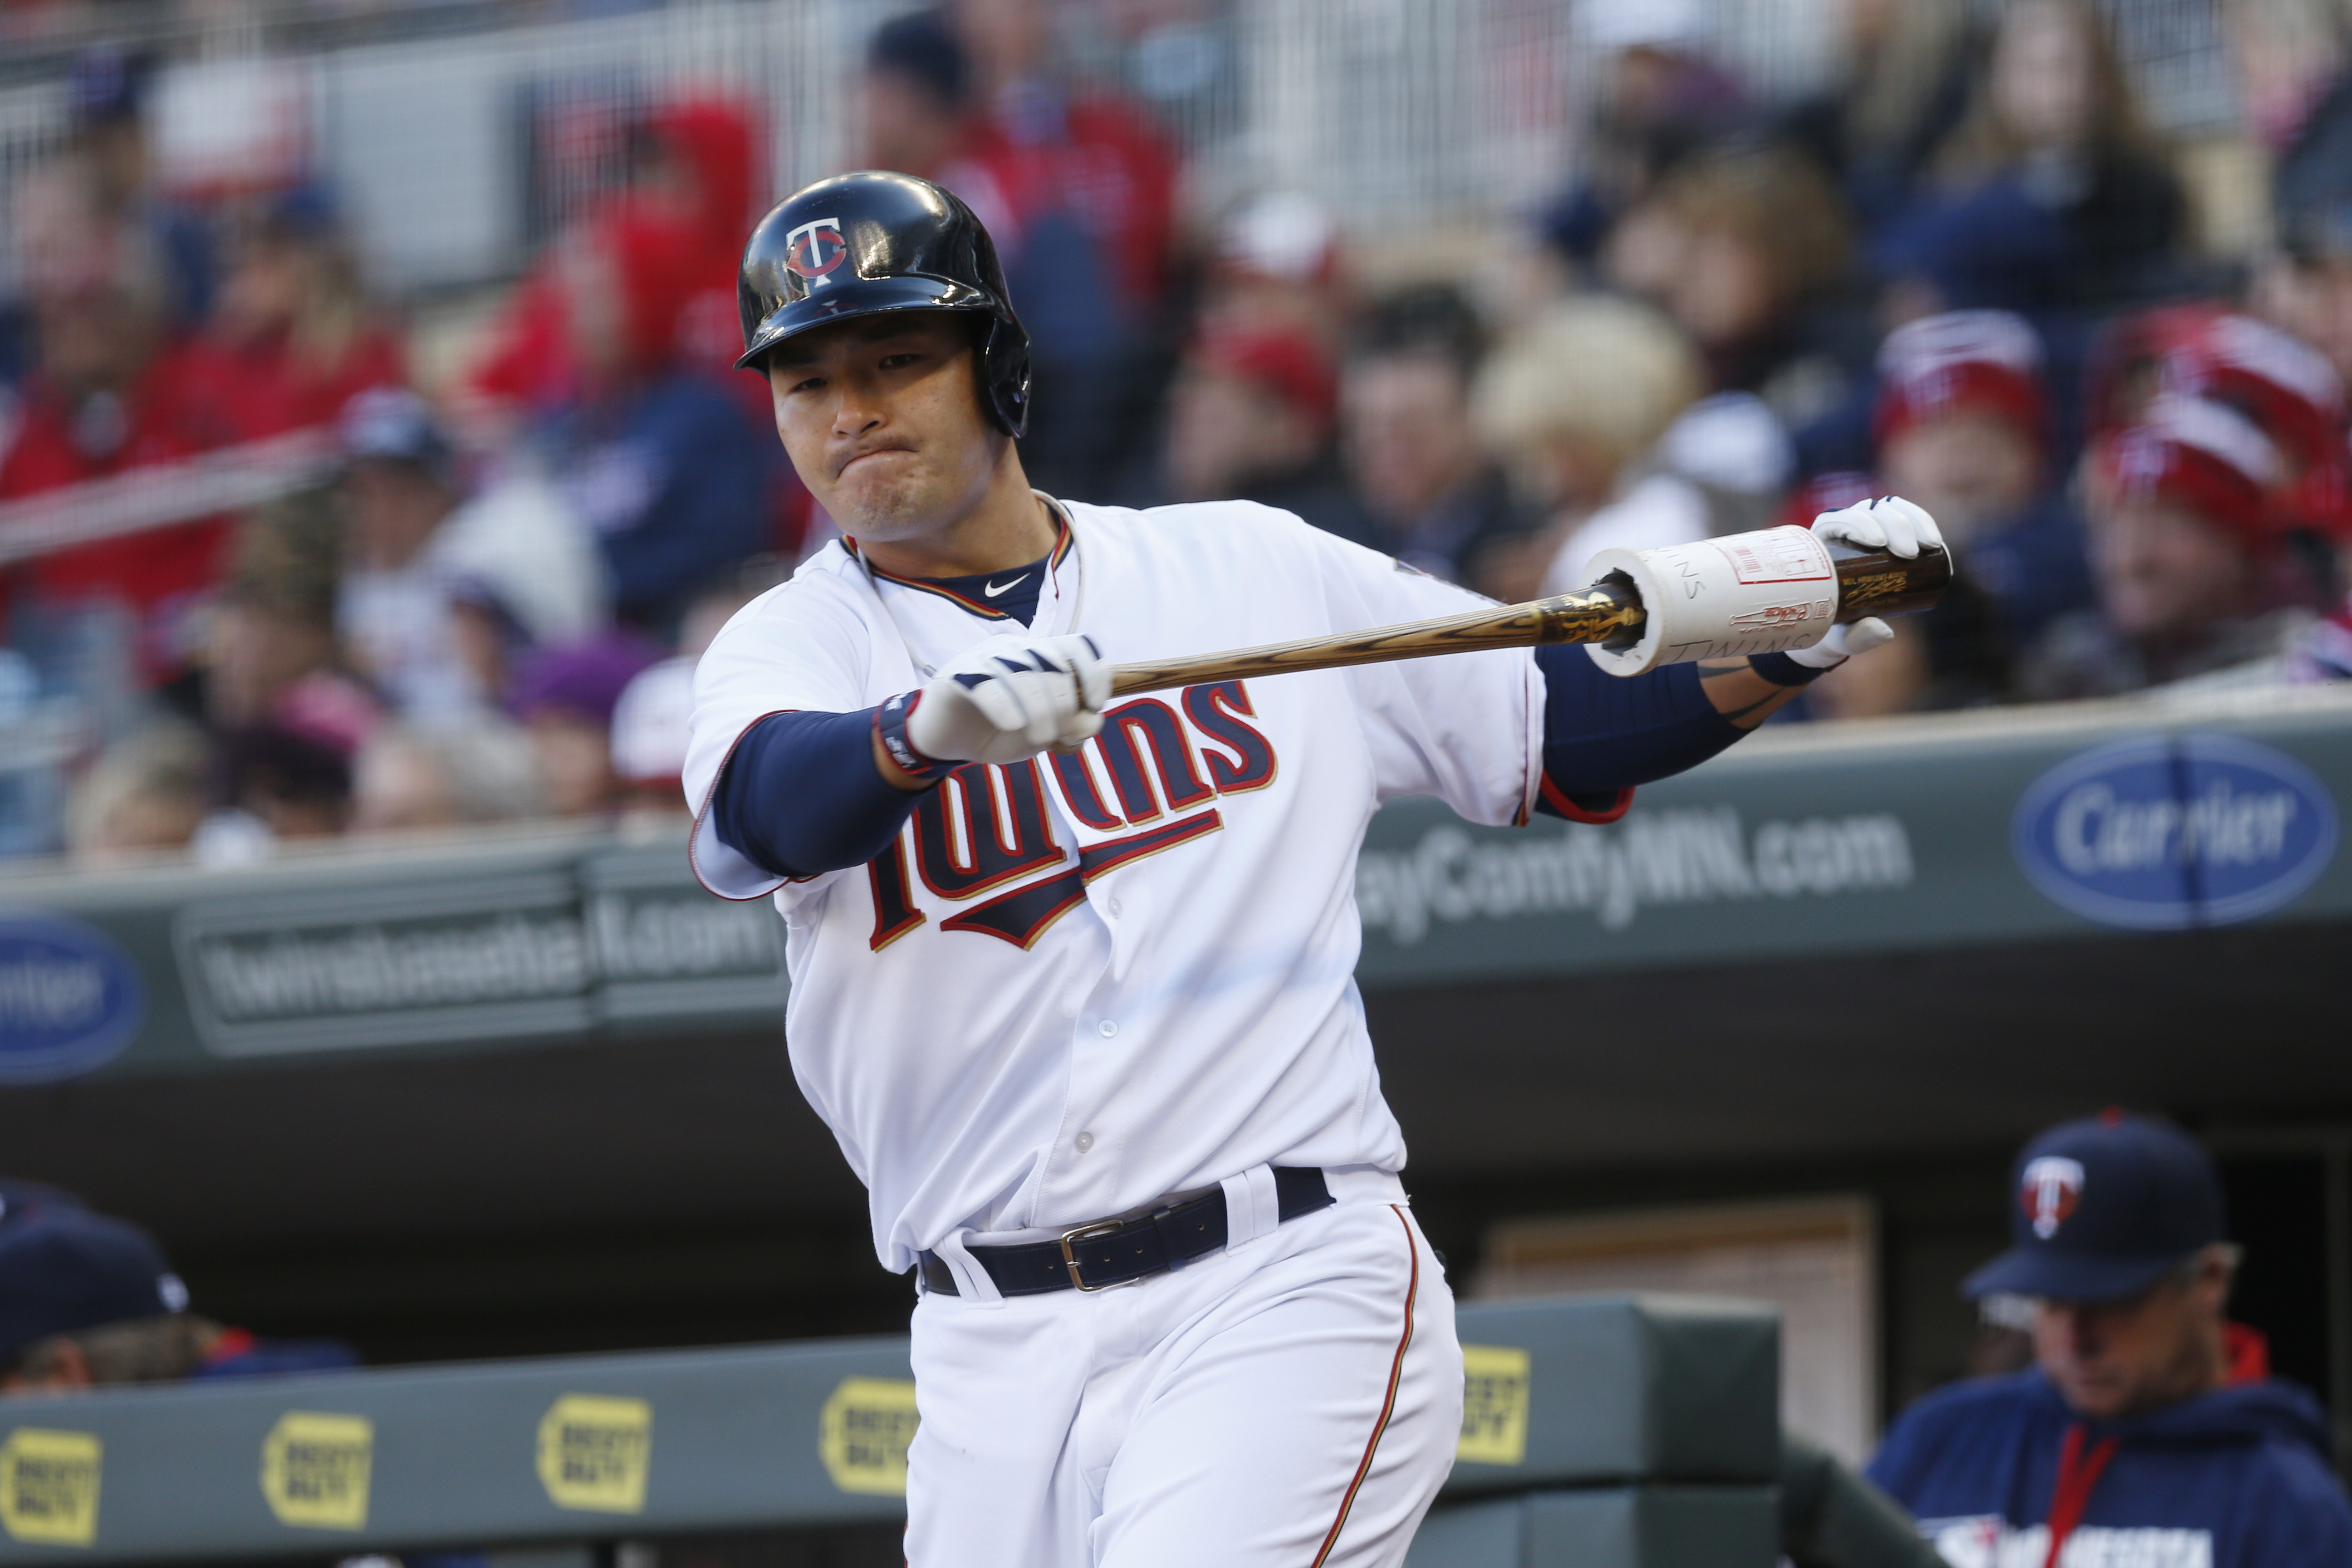 FILE - In this April 11, 2016, file phot, Minnesota Twins' Byung Ho Park, of South Korea, warms up on deck during a baseball game against the Chicago White Sox in Minneapolis.  Park came into MLB as a Korean baseball star, but he's playing more like a roo